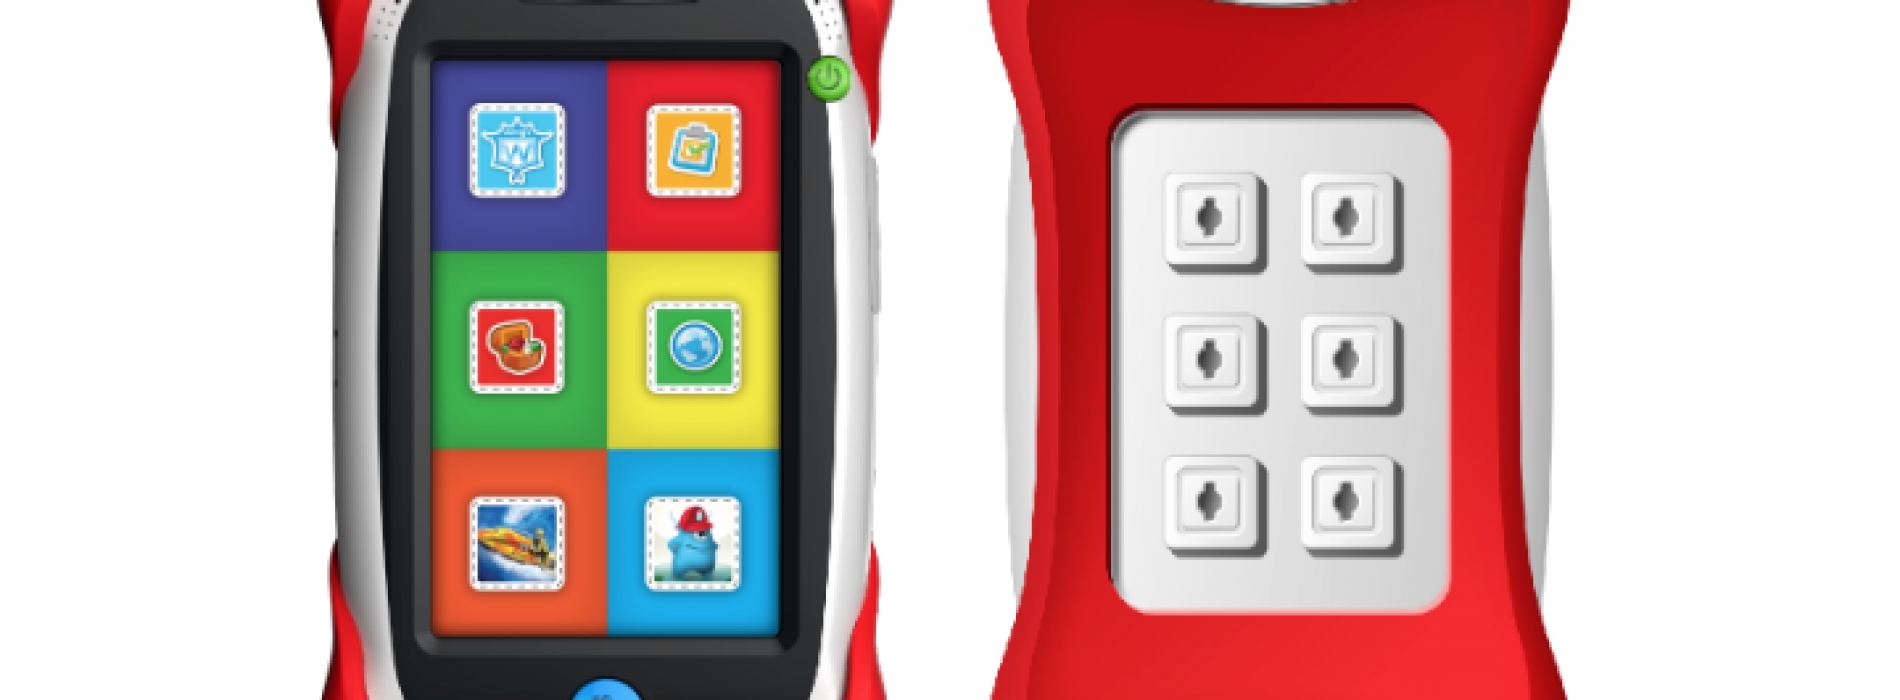 Fuhu introduces $99 nabi Jr. tablet for kids